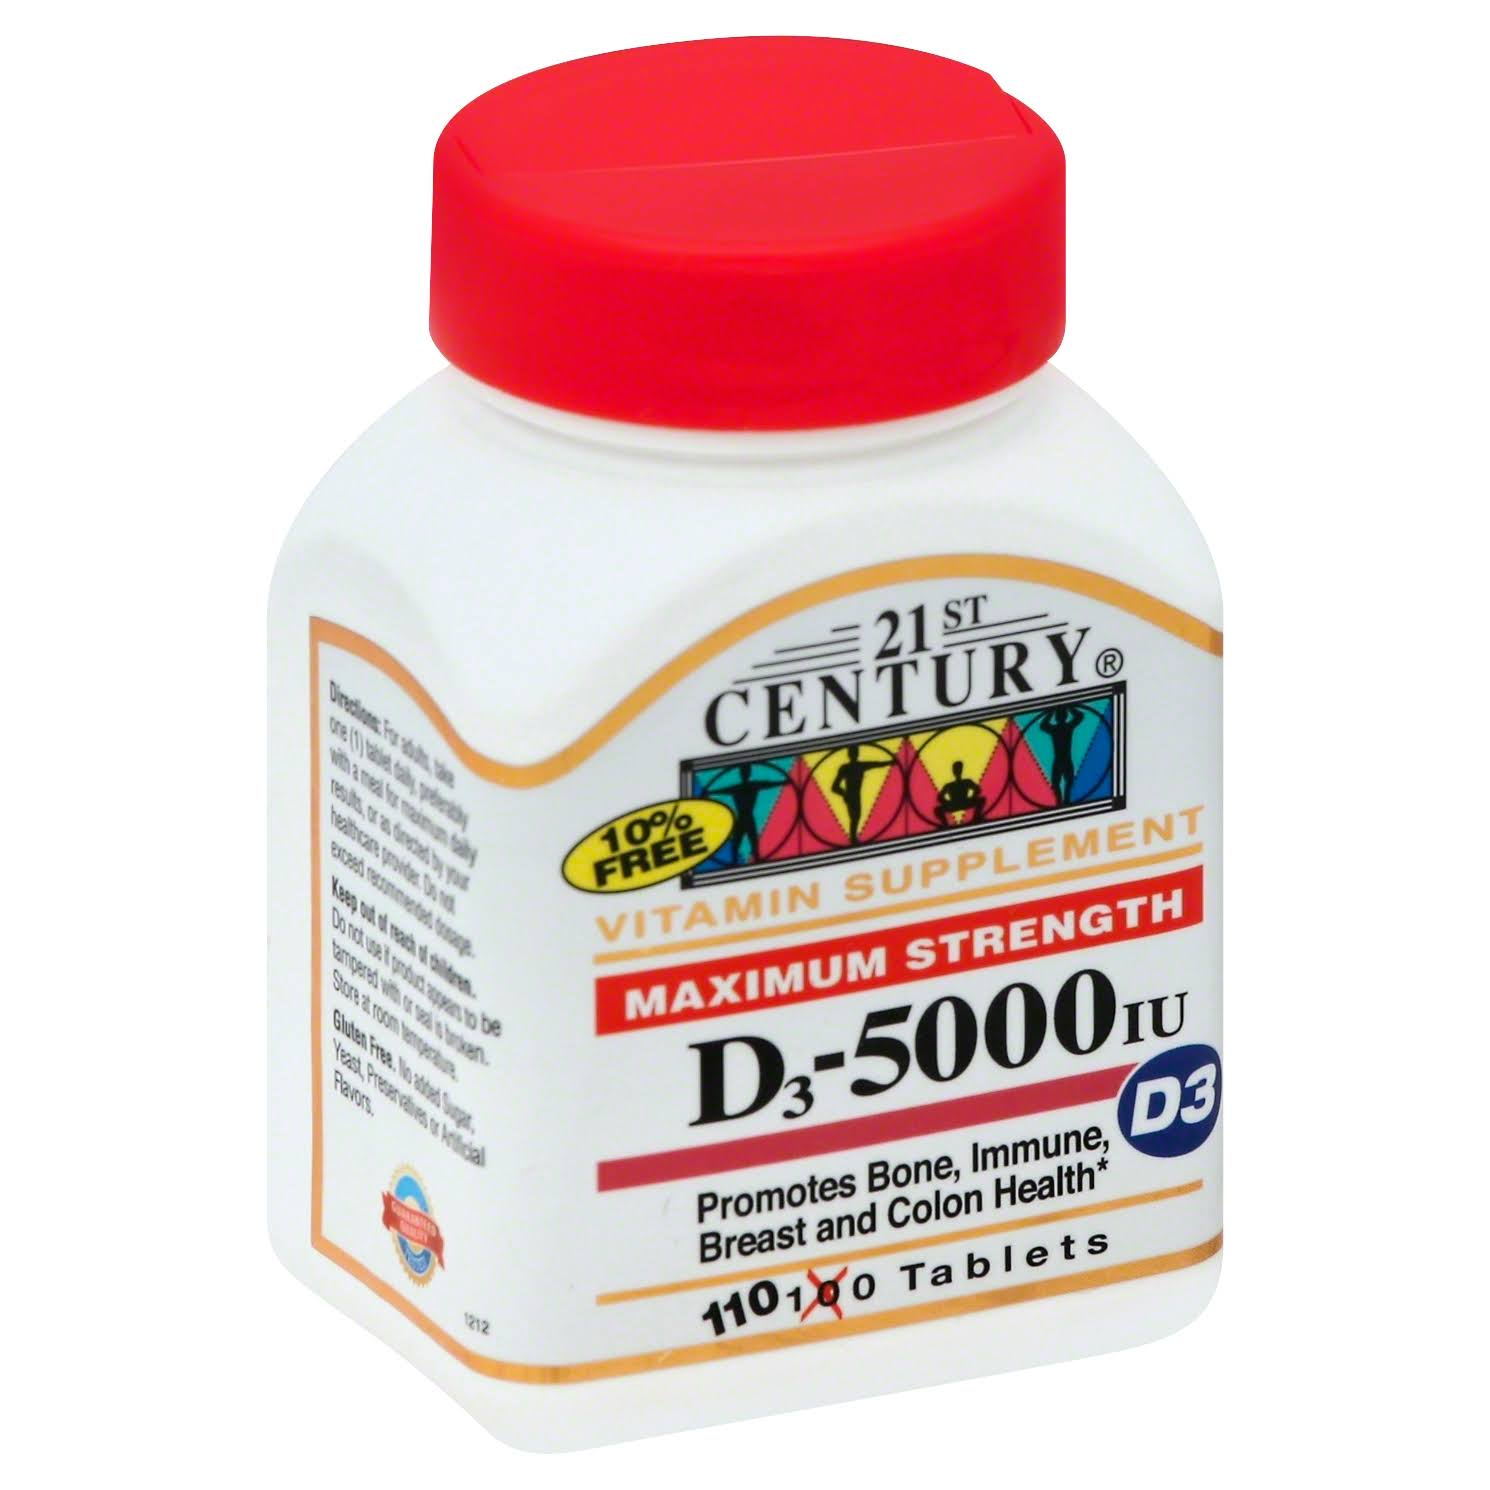 21st Century Maximum Strength Vitamins Tablet - 110ct